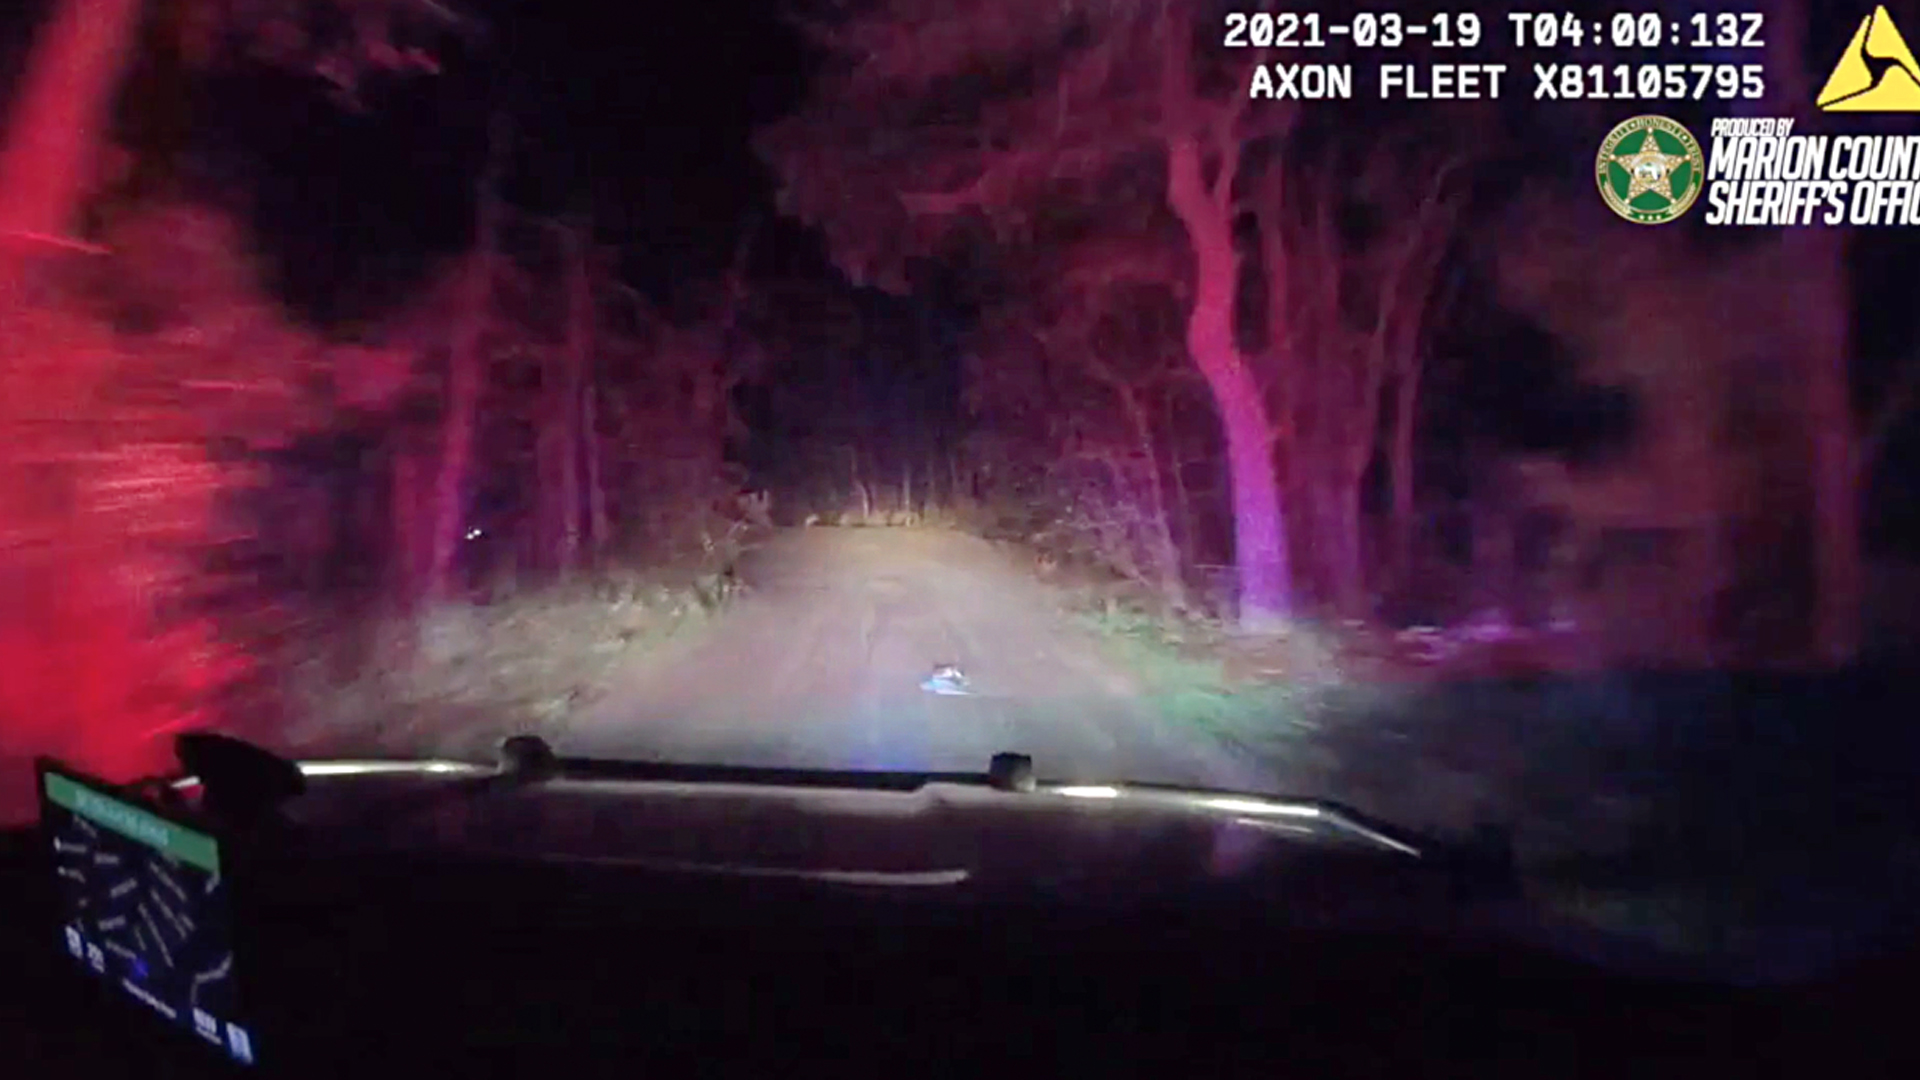 VIDEO: AirOne Tracks Down Wanted Criminal Who Led Cops Into Dangerous Nightly Pursuit